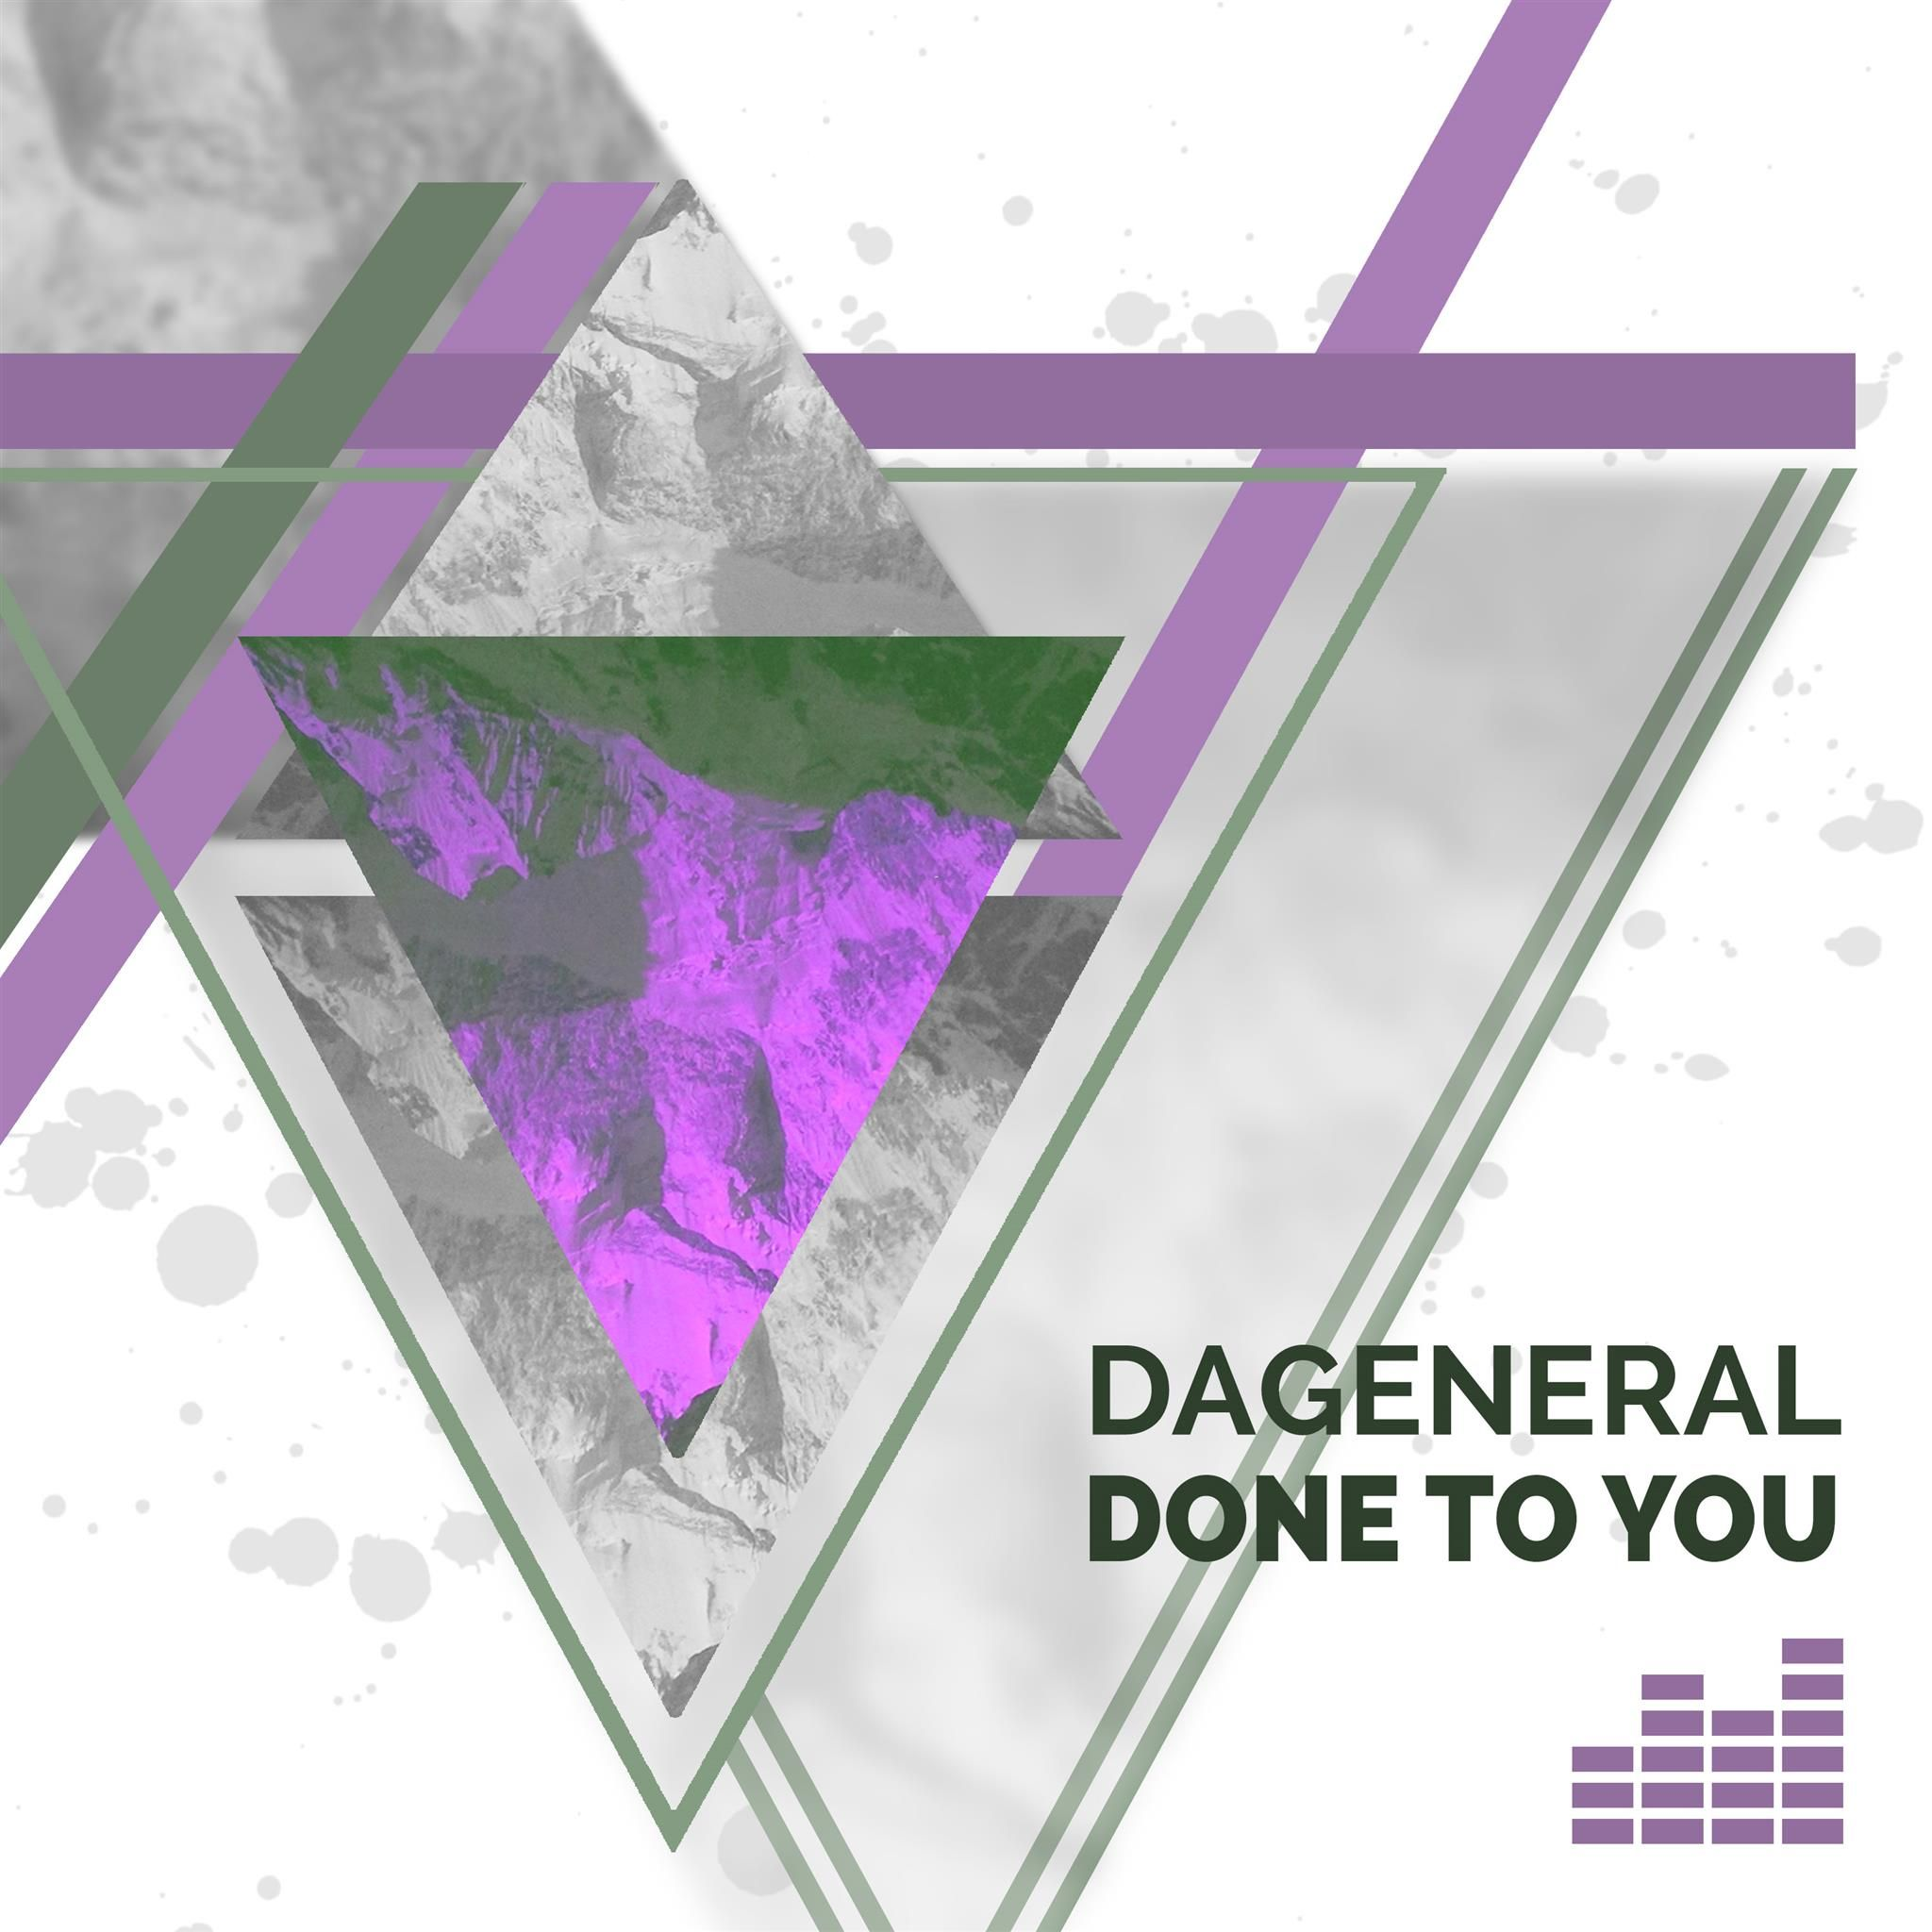 dageneral_done_to_you_artwork.jpg